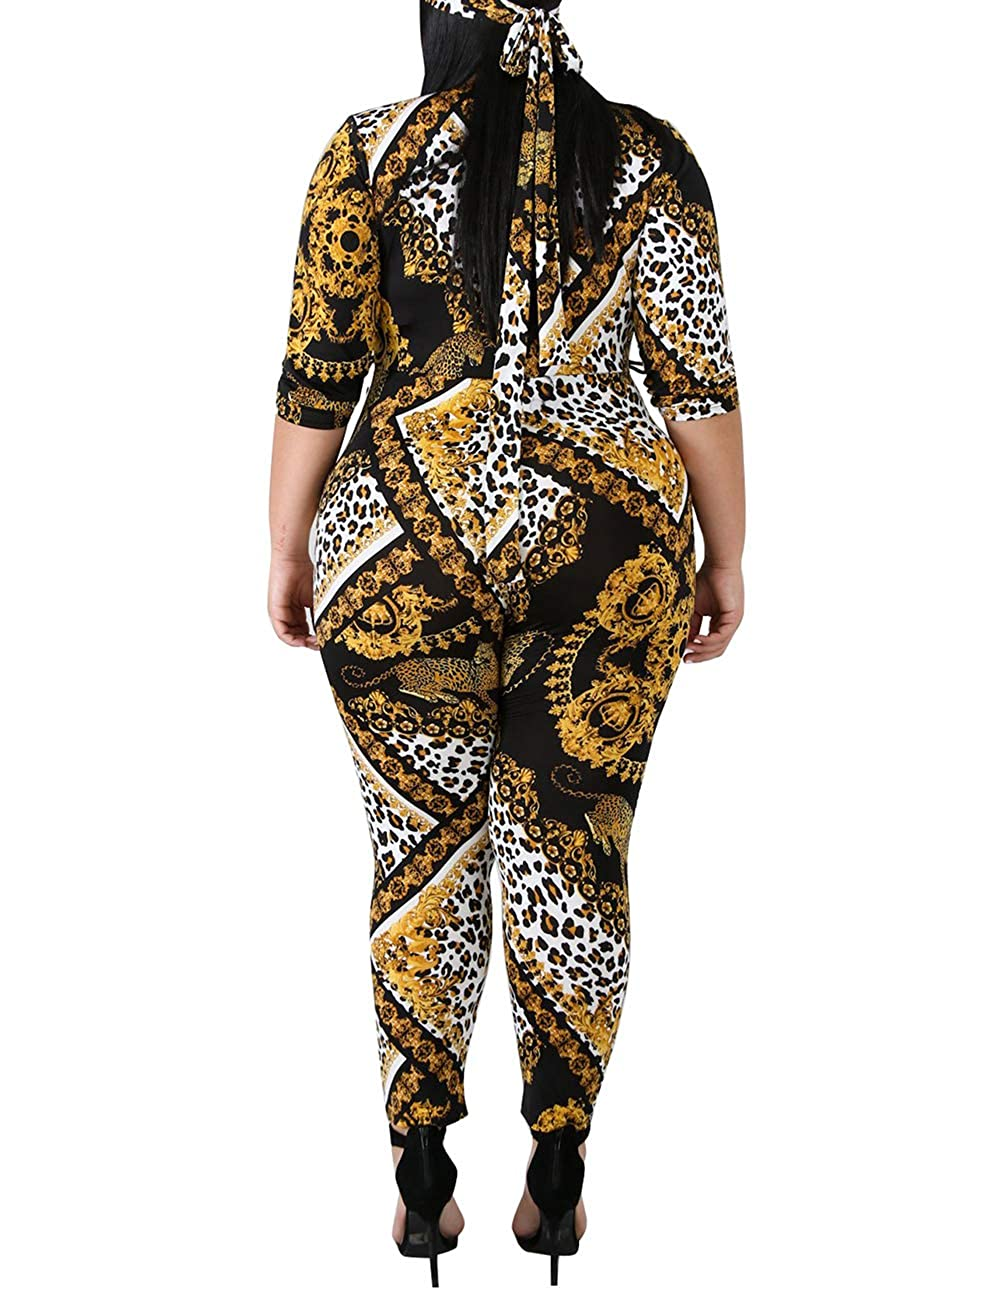 5cbbb2ace15 Amazon.com  Rela Bota Women s Plus Size Printed Deep V Neck Skinny Jumpsuit  Rompers Clubwear  Clothing